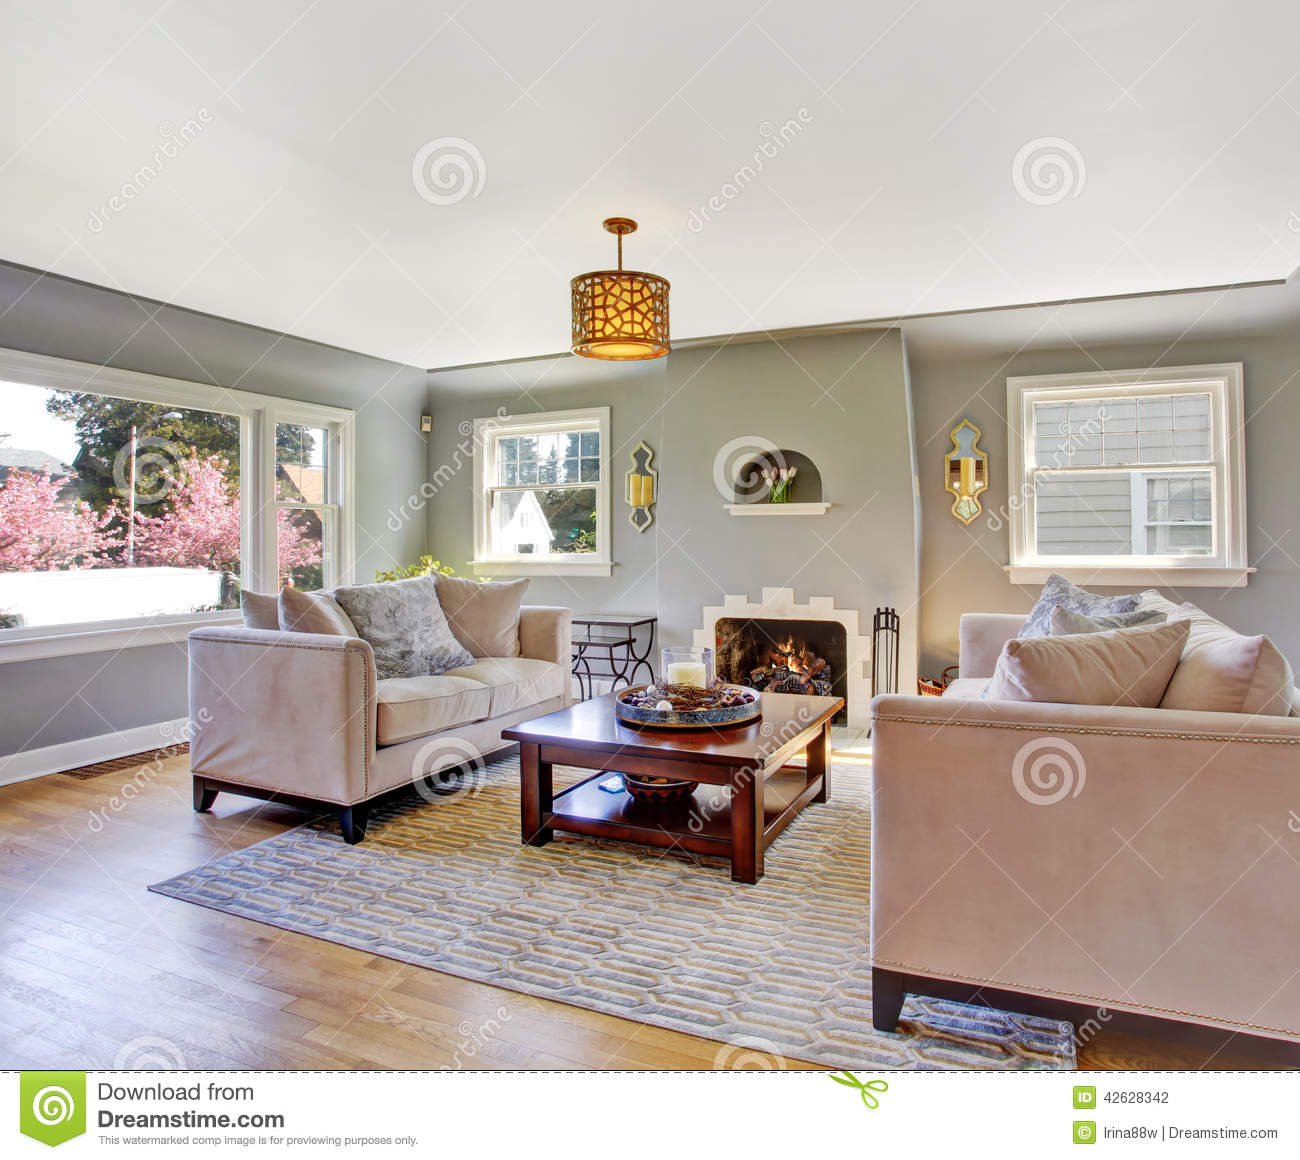 Pale Grey Living Room With Yellow Fireplace: Light Grey Living Room With White Sofas And Fireplace